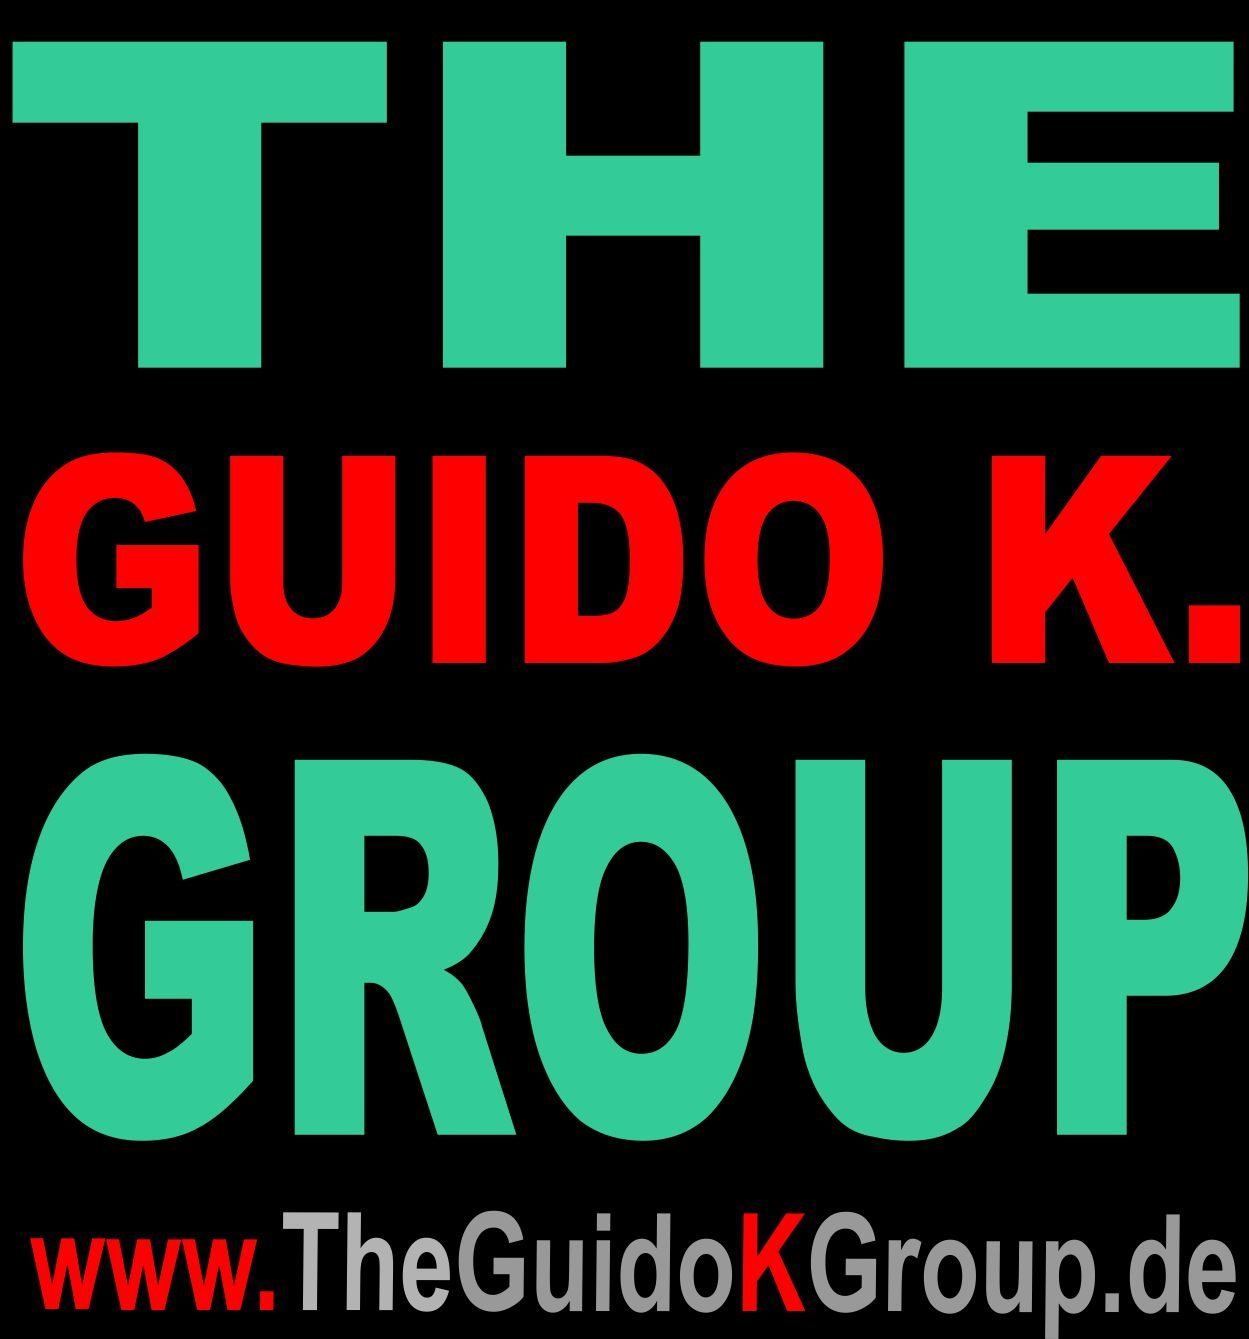 The Guido K. Logo